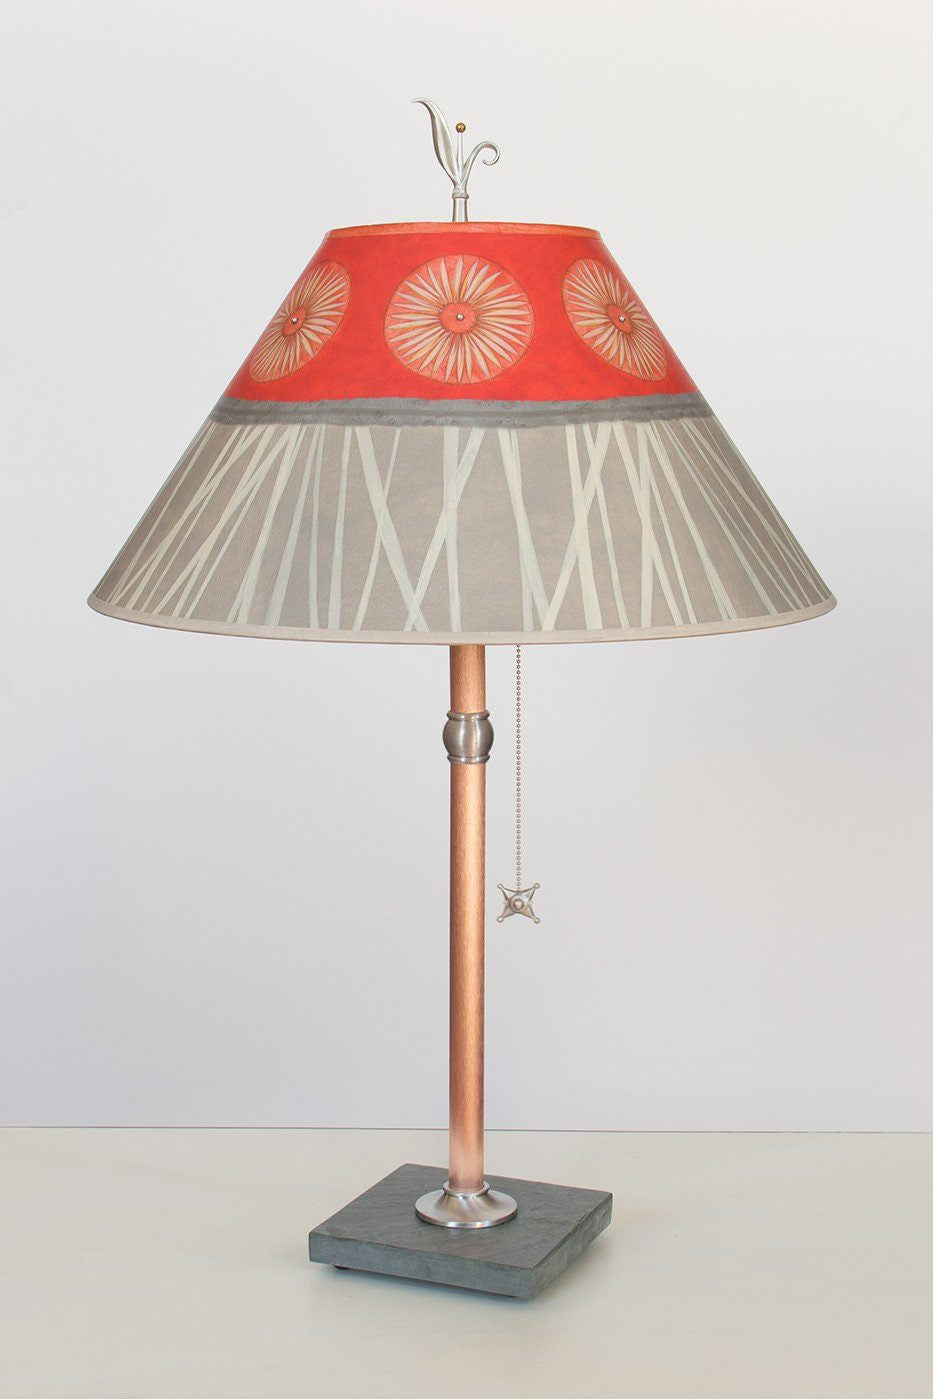 Copper Table Lamp on Vermont Slate with Large Conical Shade in Tang